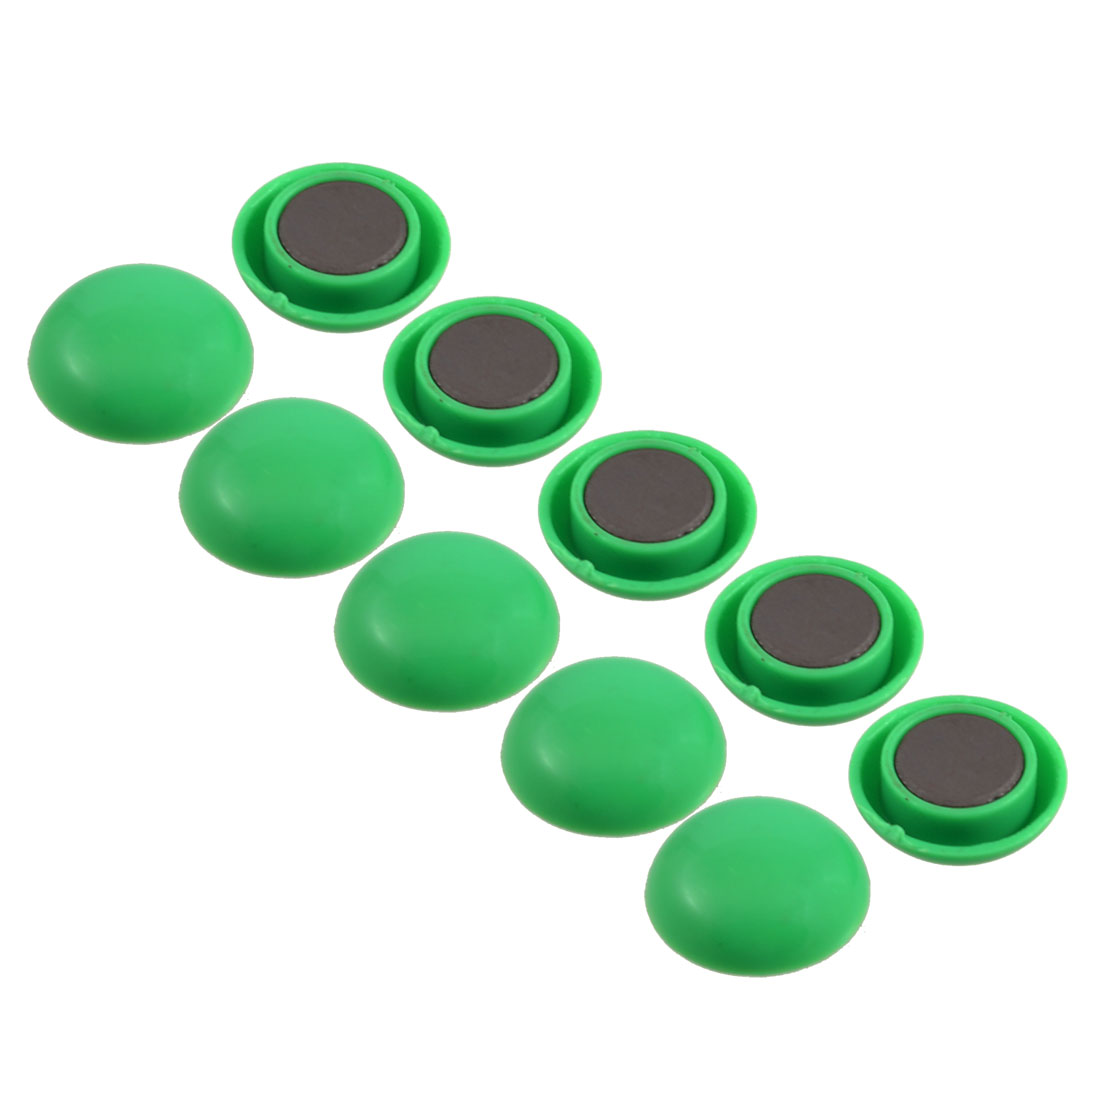 "10 Pcs 0.79"" Dia Round Shaped Green Plastic Magnetic Sticker"